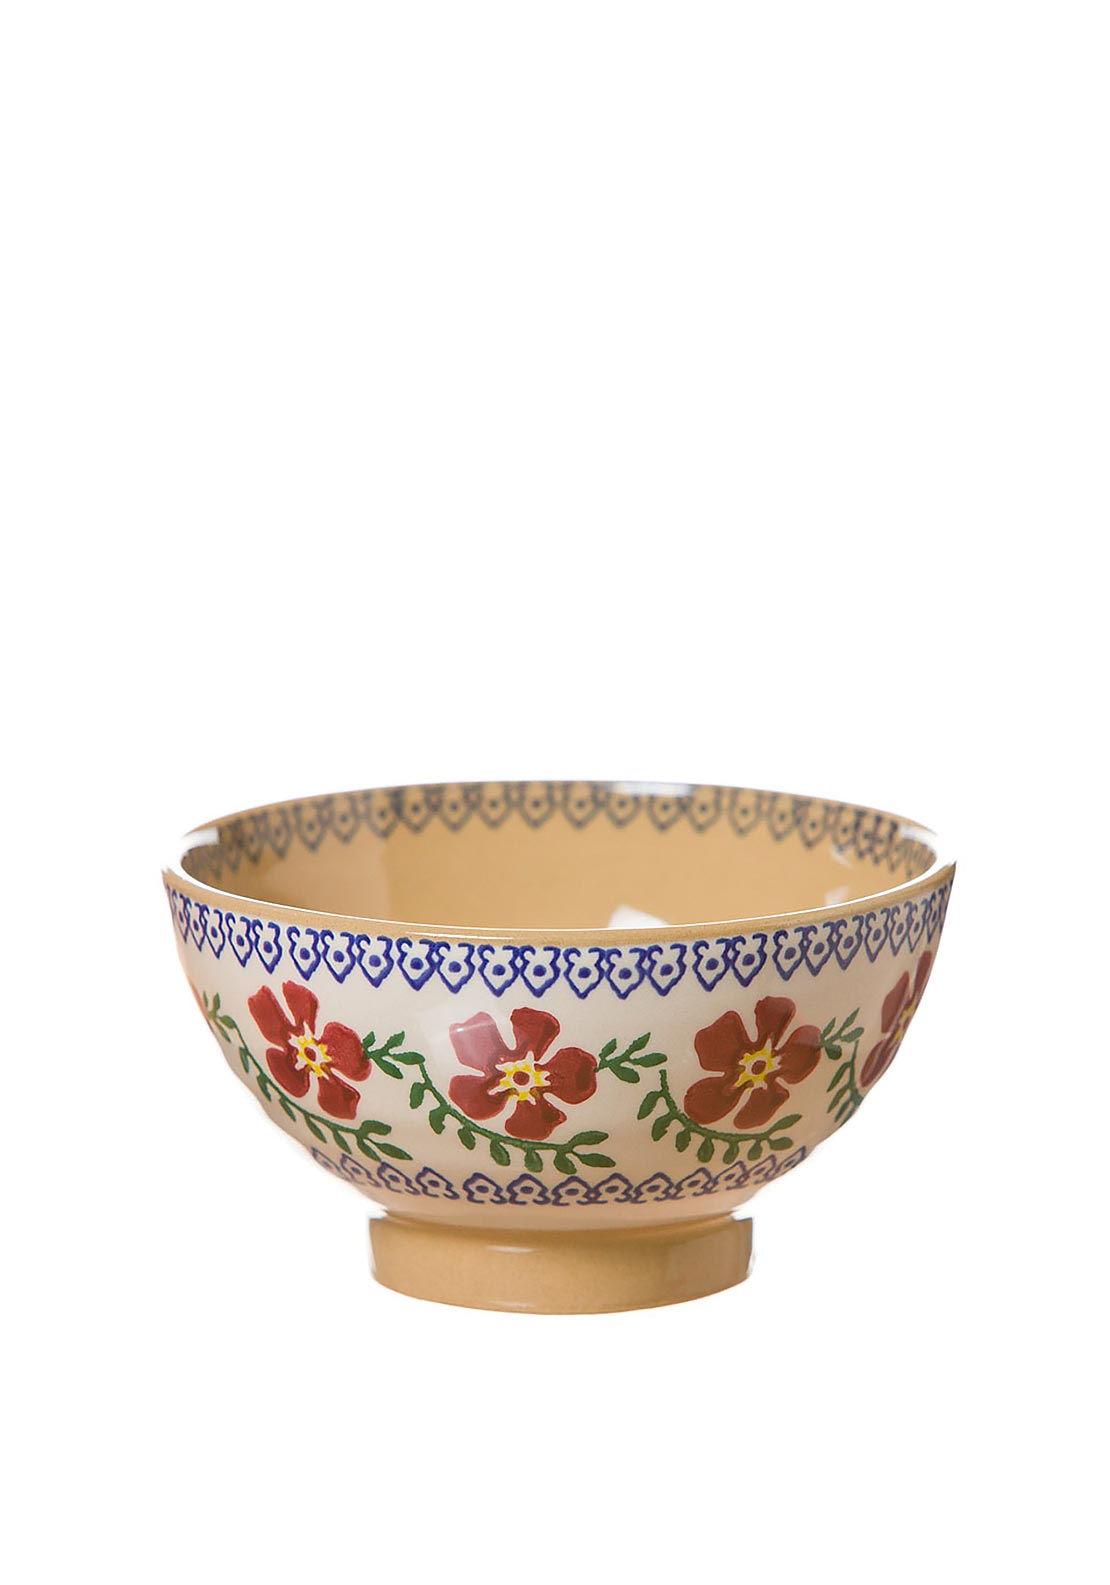 Nicholas Mosse Pottery Old Rose Bowl Small